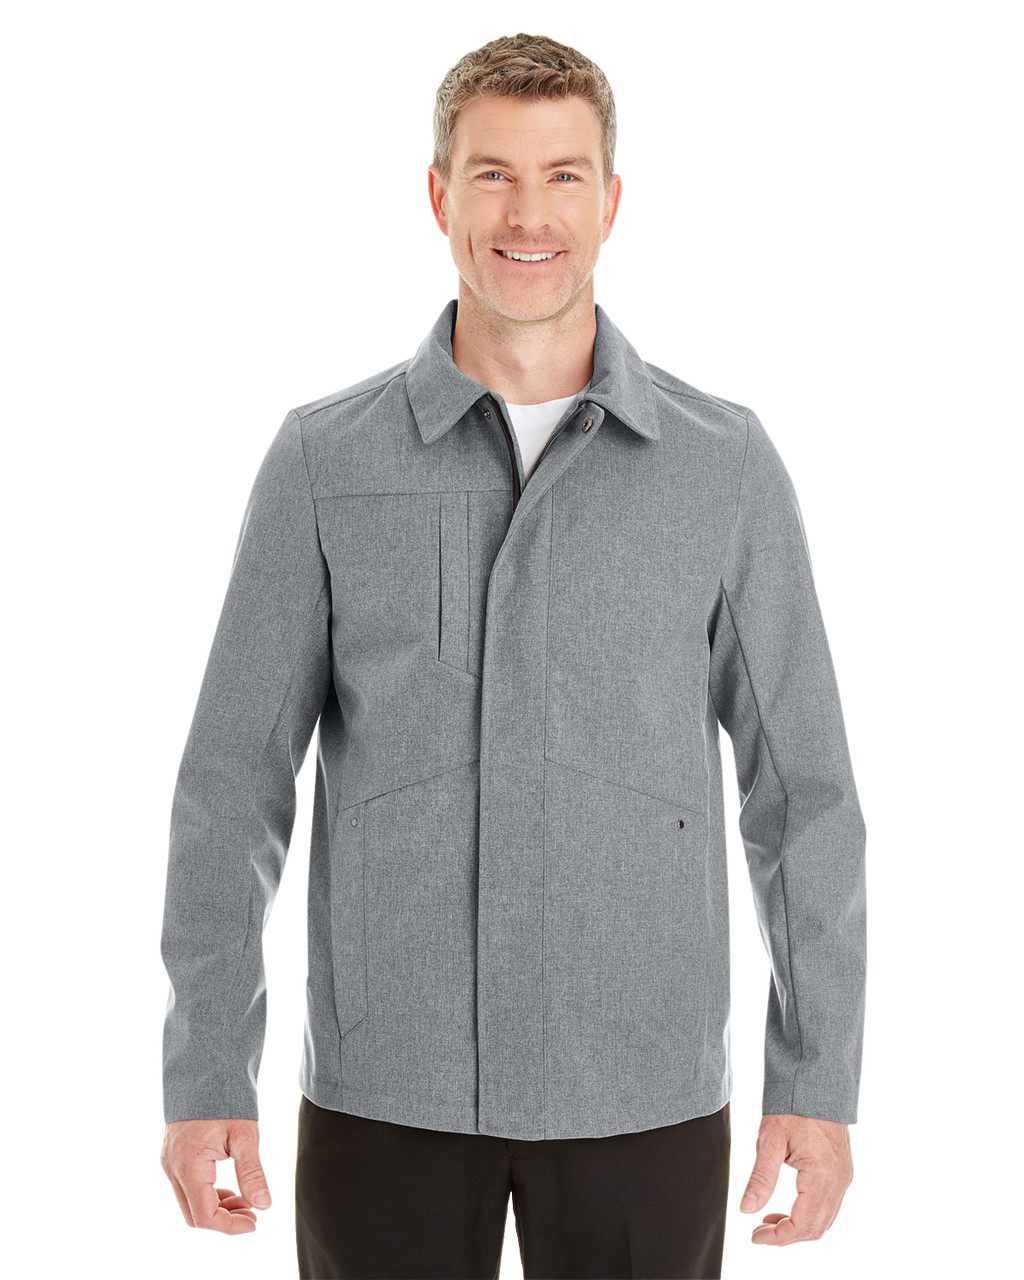 City Grey - Front- NE705 Ash City - North End Men's Edge Soft Shell Jacket with Fold-Down Collar | Blankclothing.ca